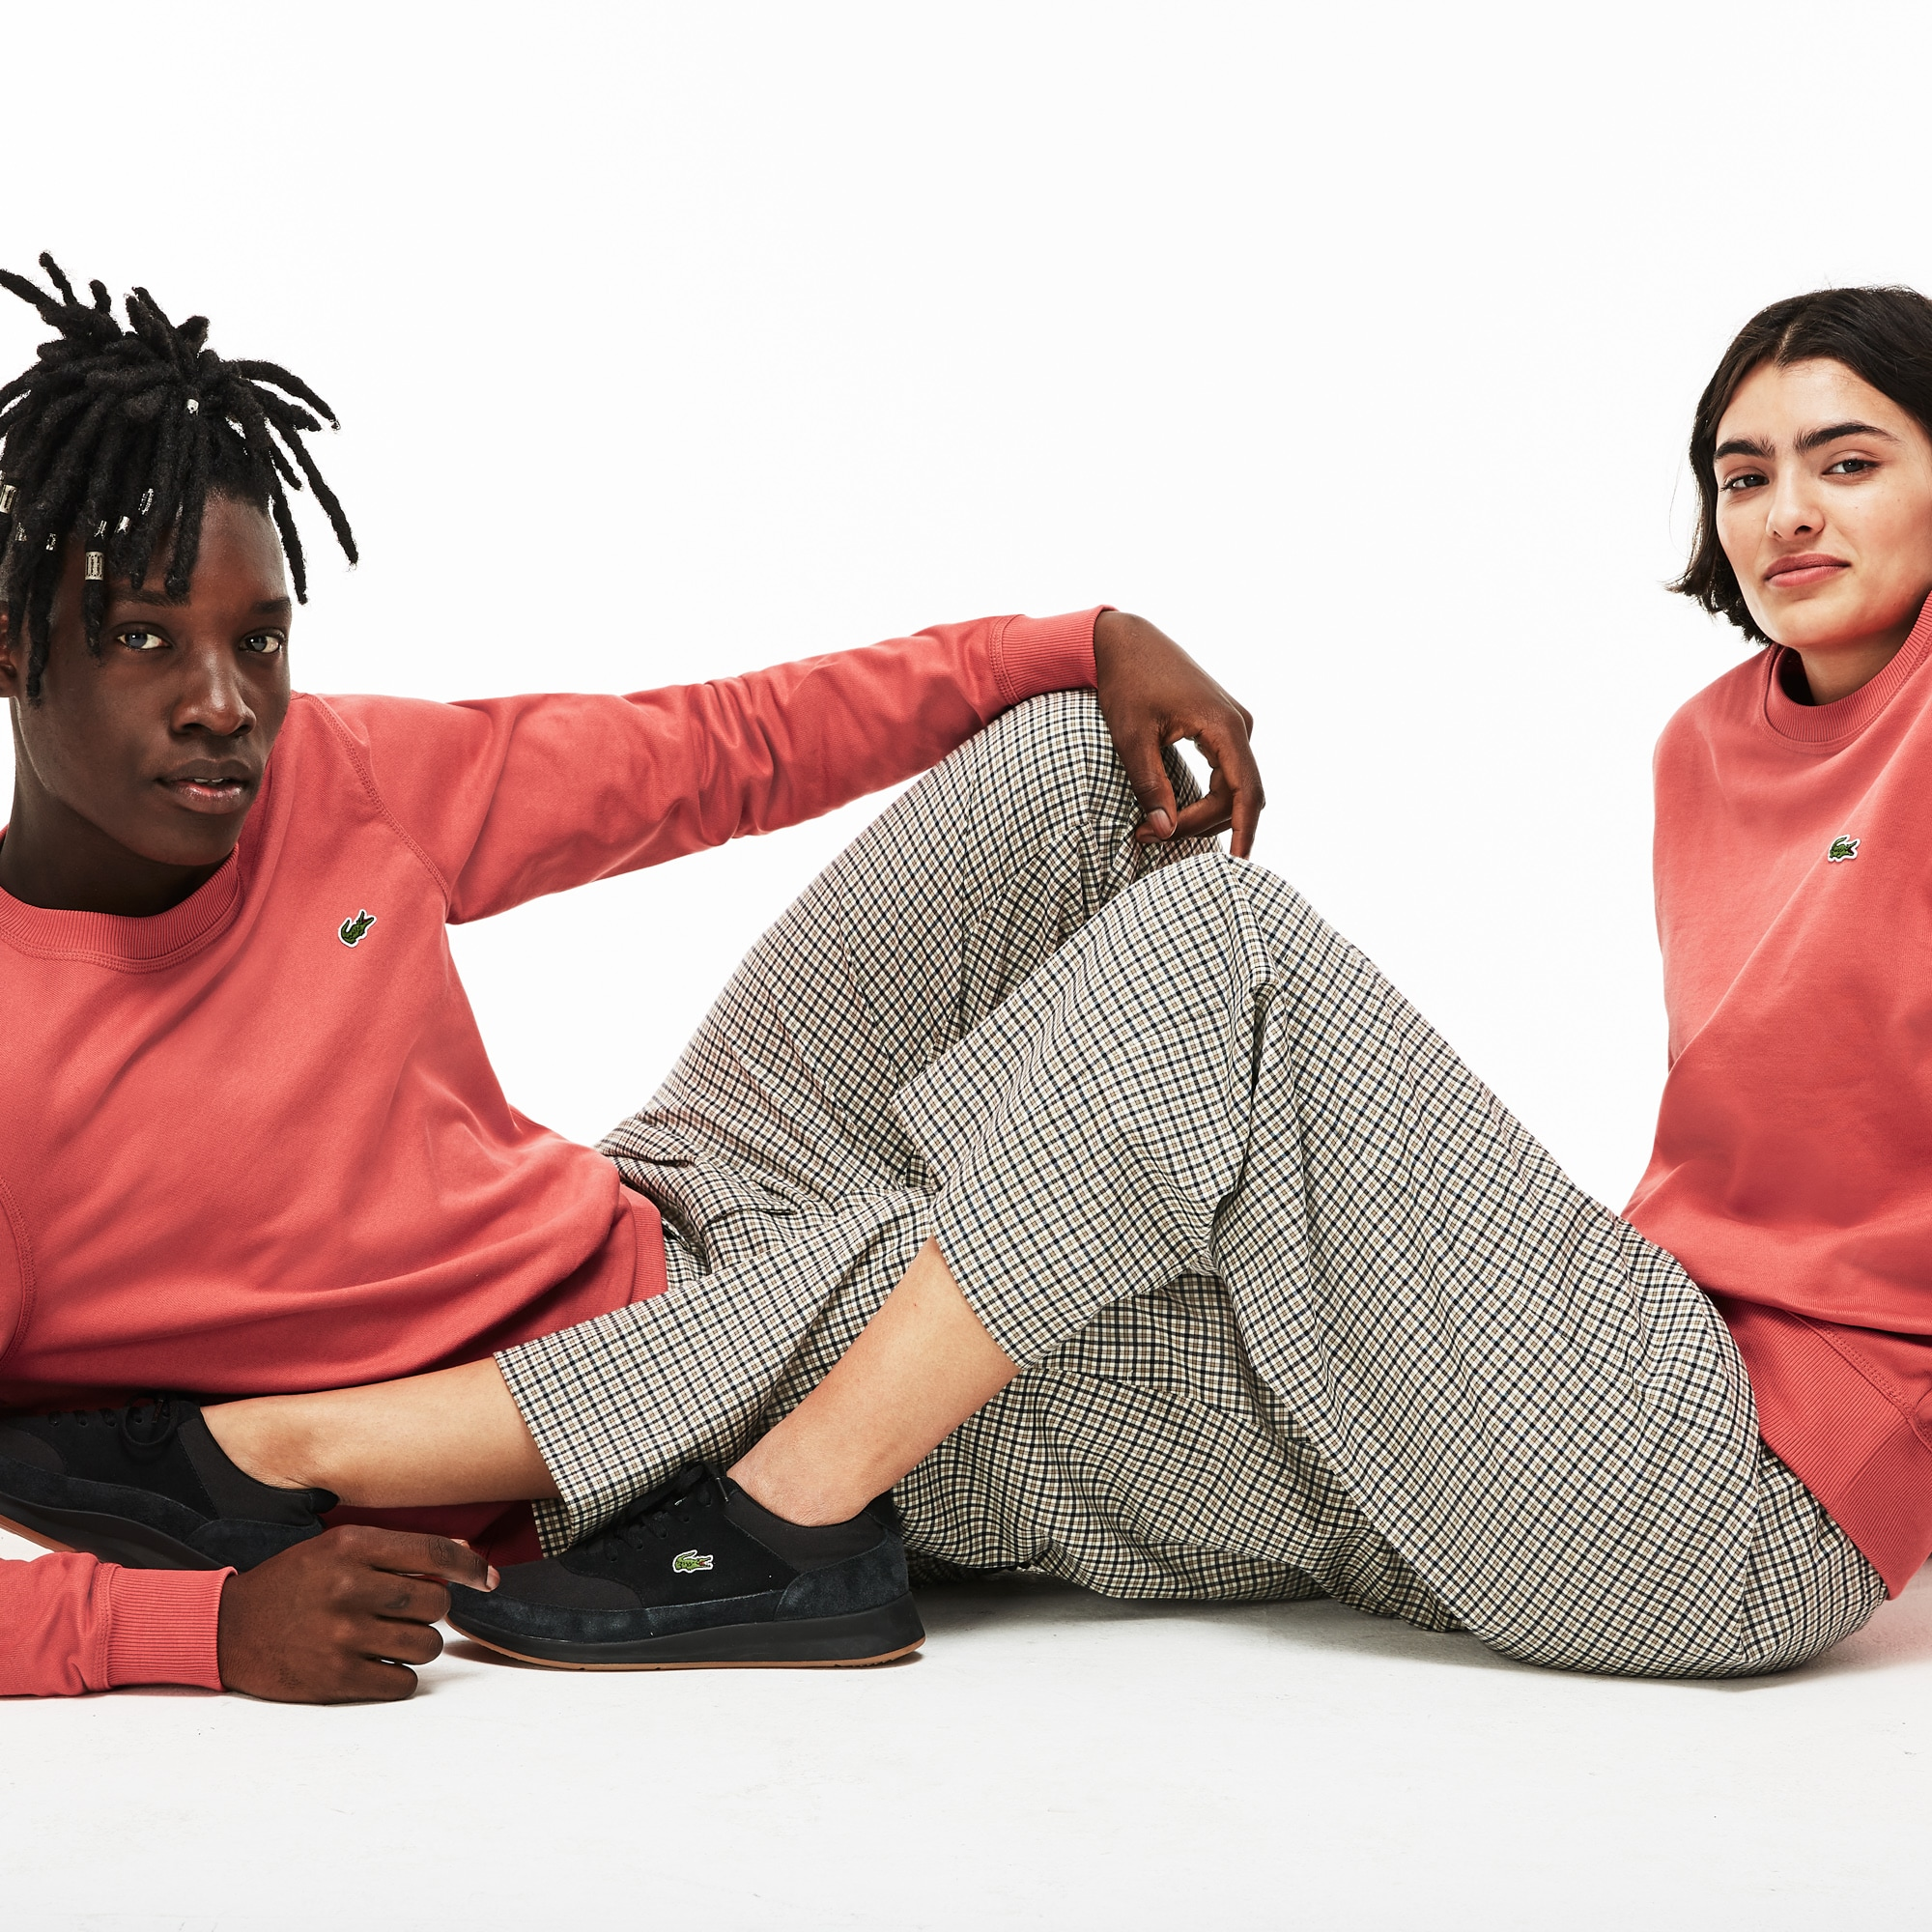 Unisex Lacoste LIVE Crew Neck Cotton Fleece Sweatshirt